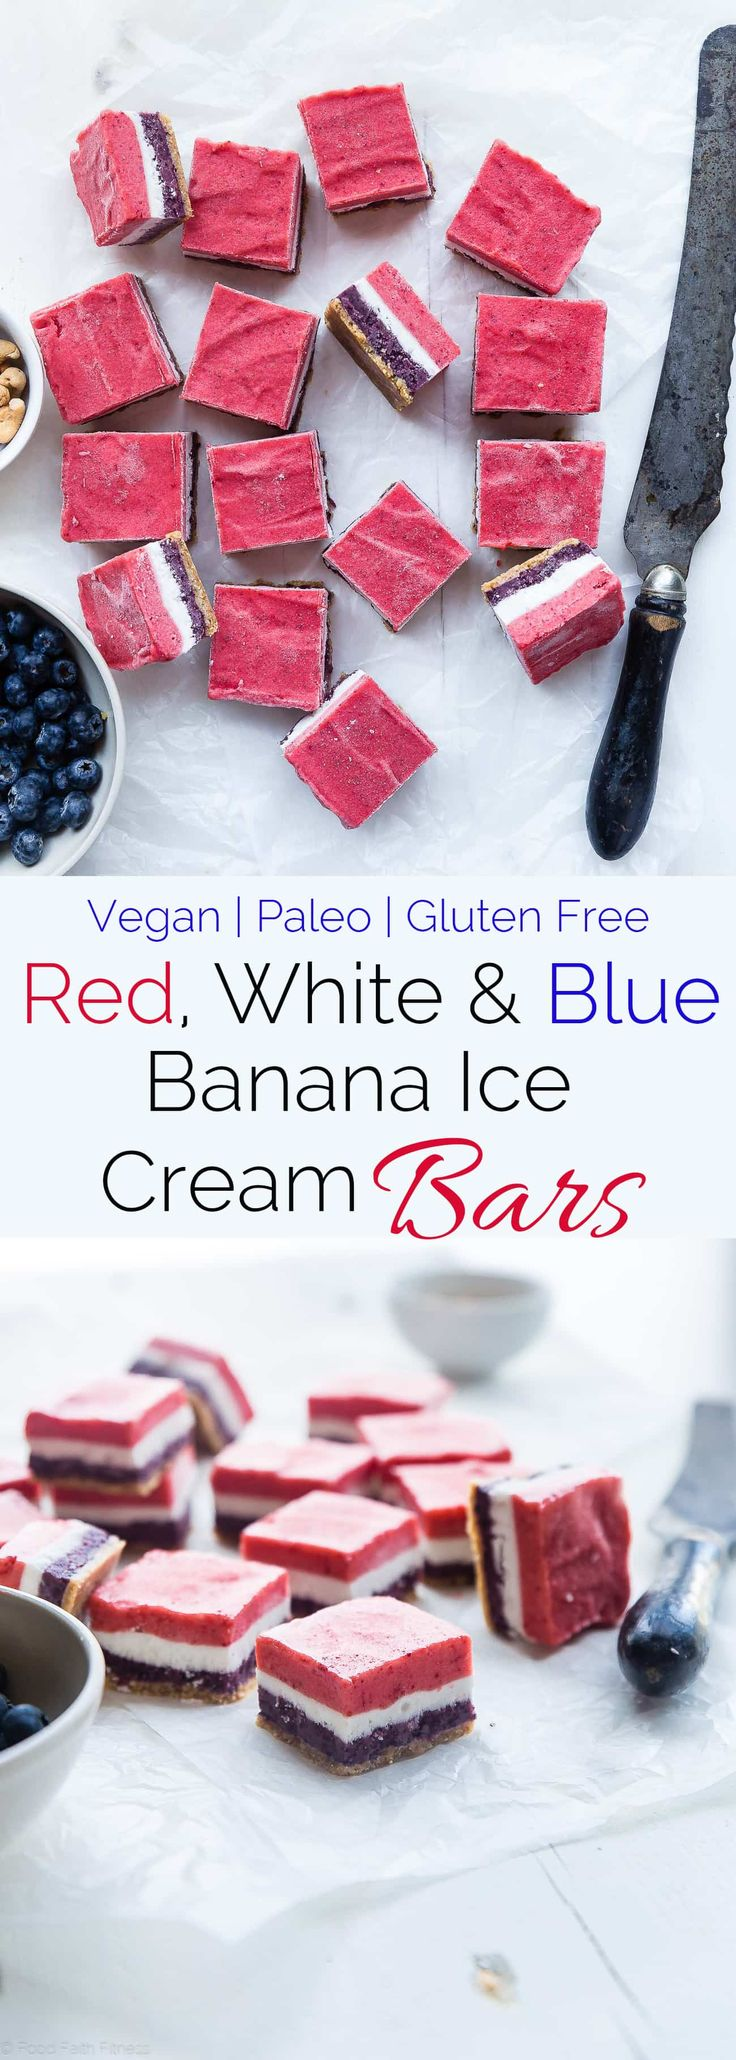 Red, White and Blue Vegan Banana Ice Cream Bars - Gluten/dairy free and only 7 ingredients! The perfect healthy treat for summer or the fourth of July that are only 125 calories! | Foodfaithfitness.com | @FoodFaithFit